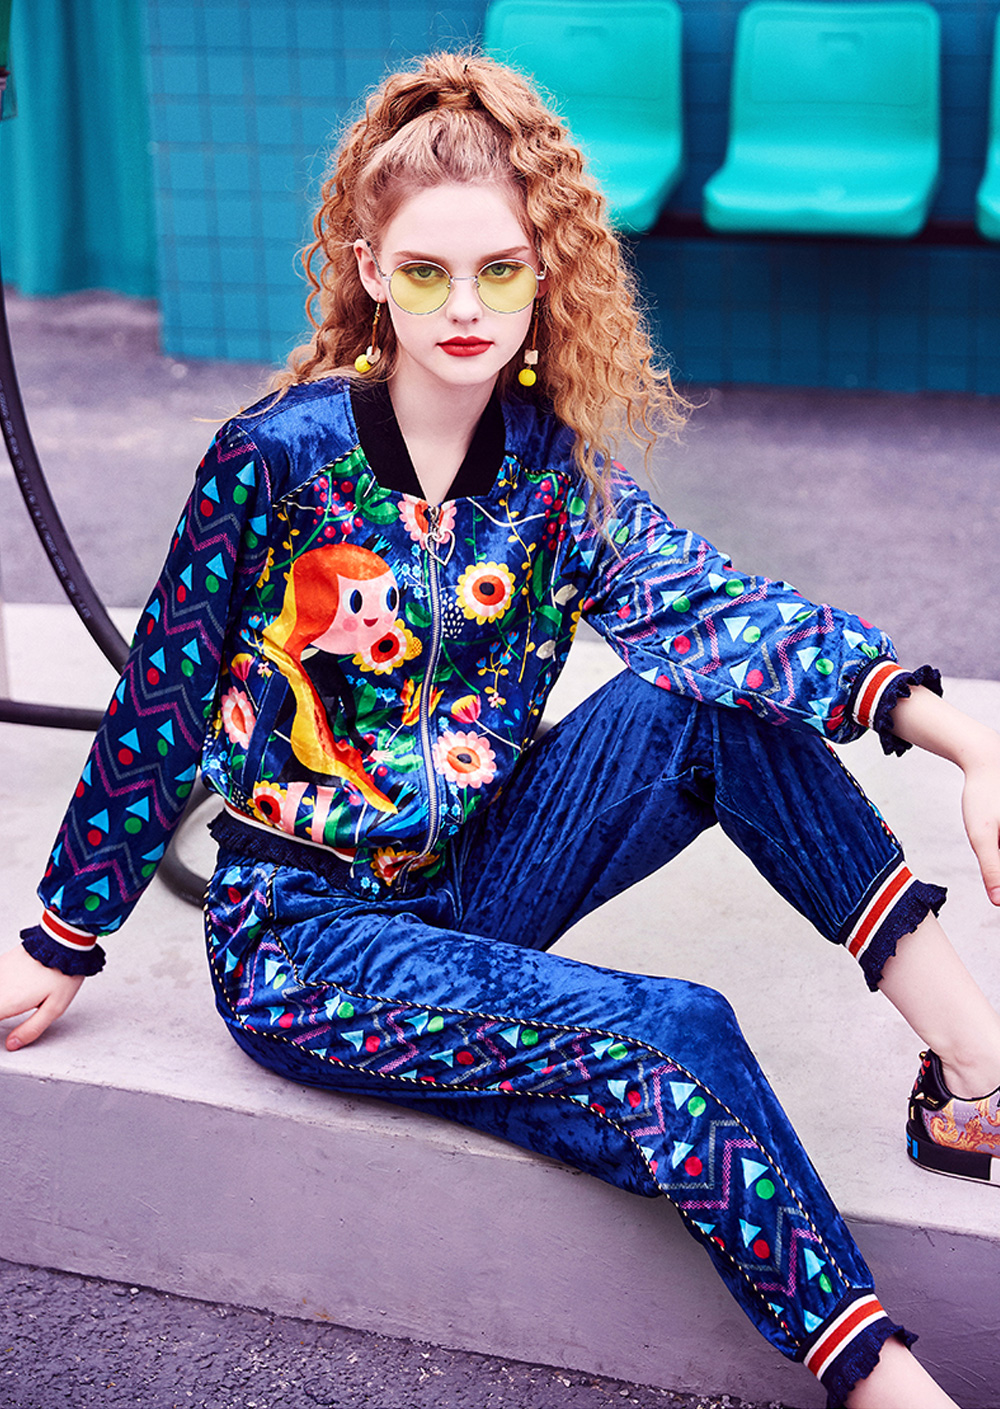 2020 Women's Velour Tracksuit Set with Long Sleeve Top Long Pants 2 Piece Sporty Velvet Suits with Printed Flowers 2